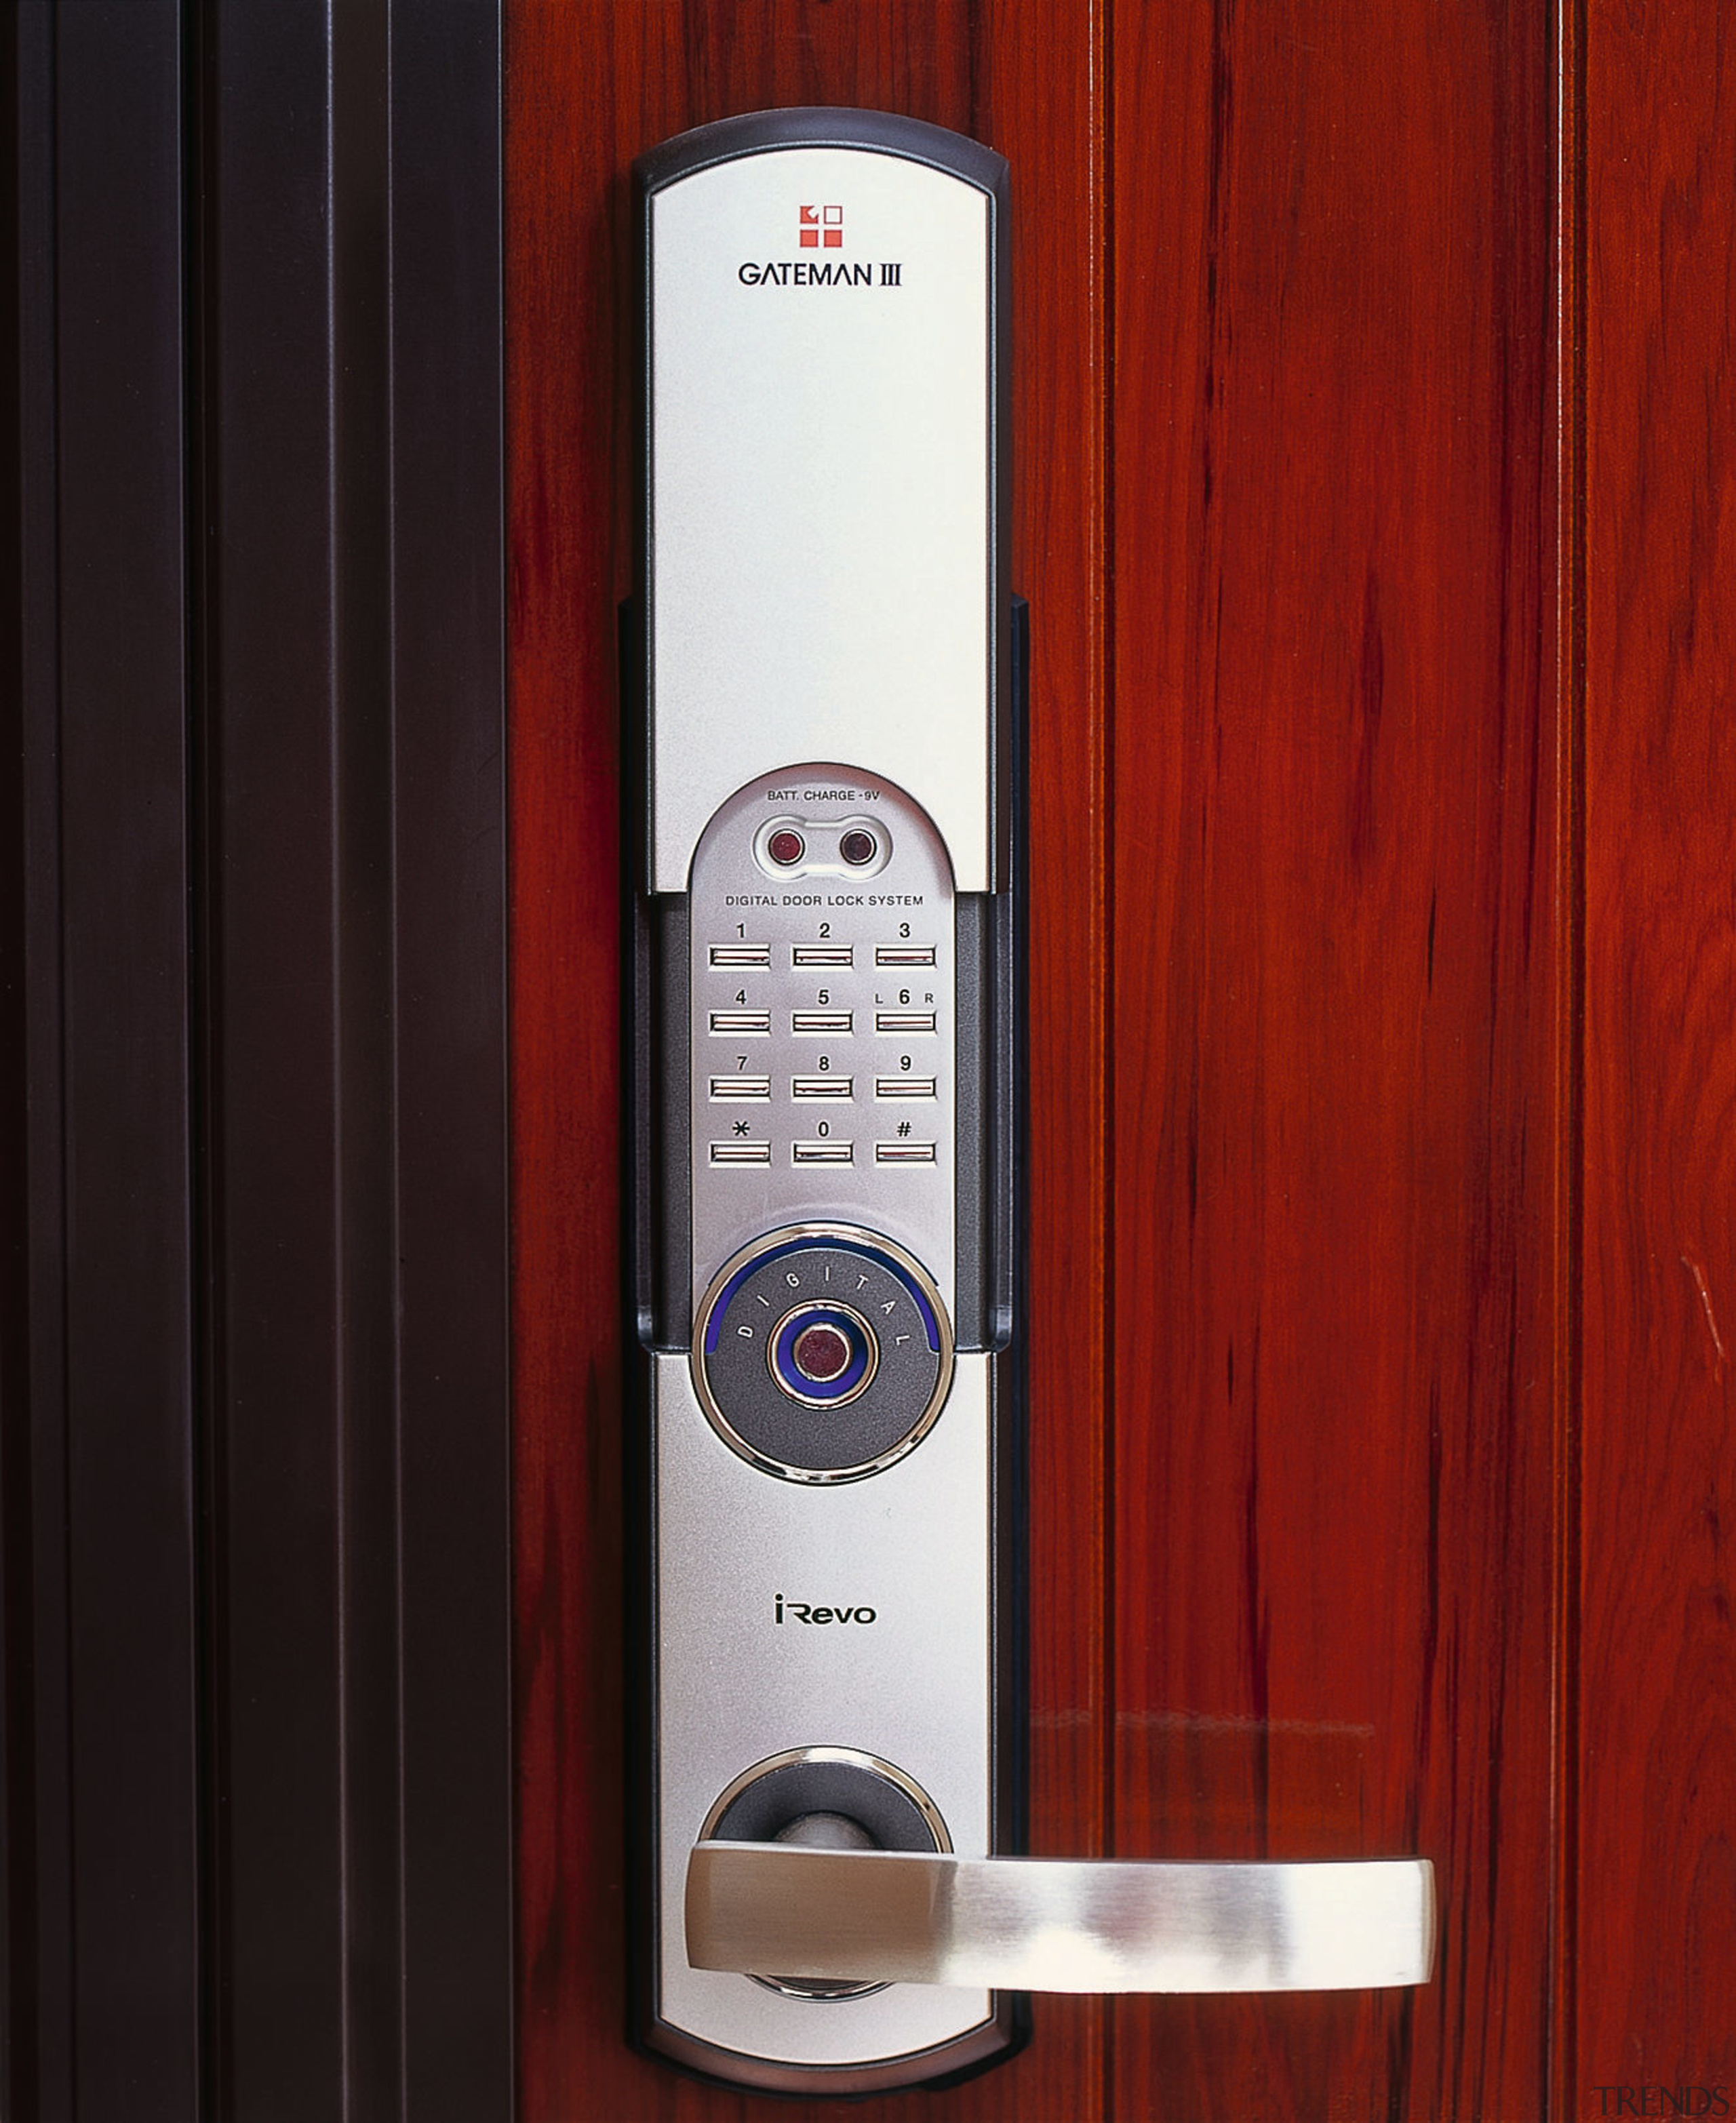 Close up view of the digital door handle hardware, lock, product, product design, red, black